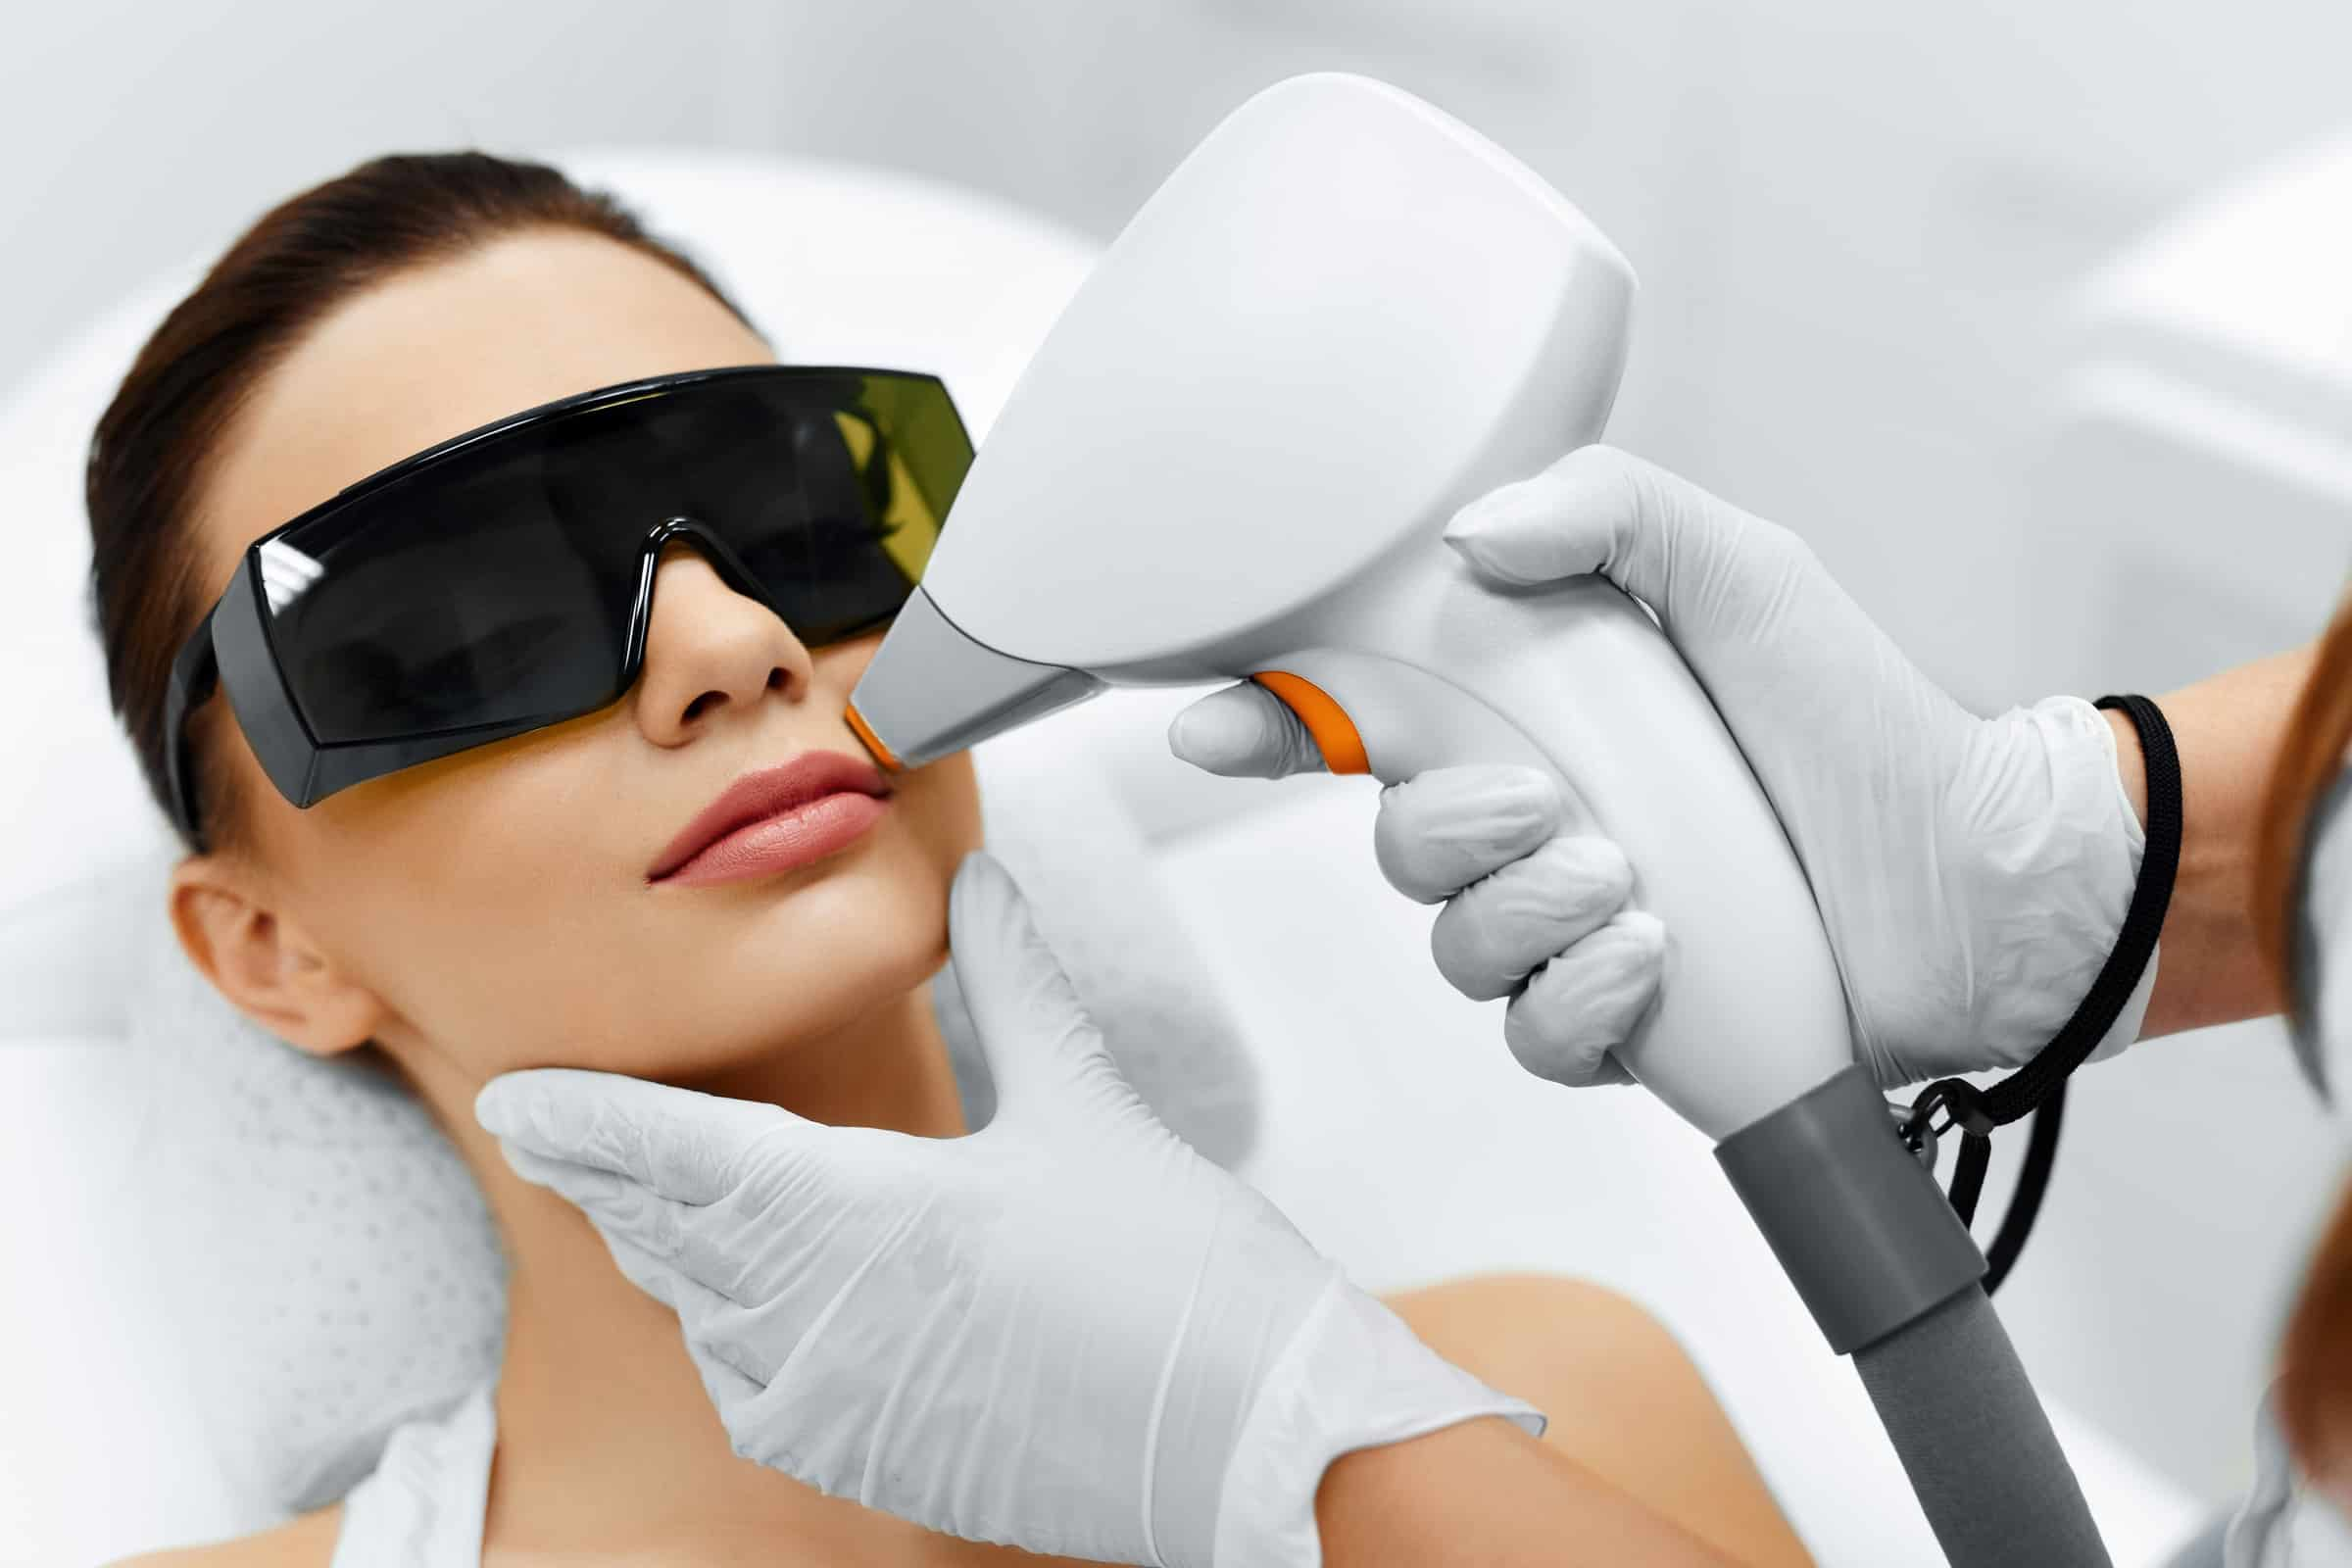 Laser hair removal treatment being performed on a woman's top lip